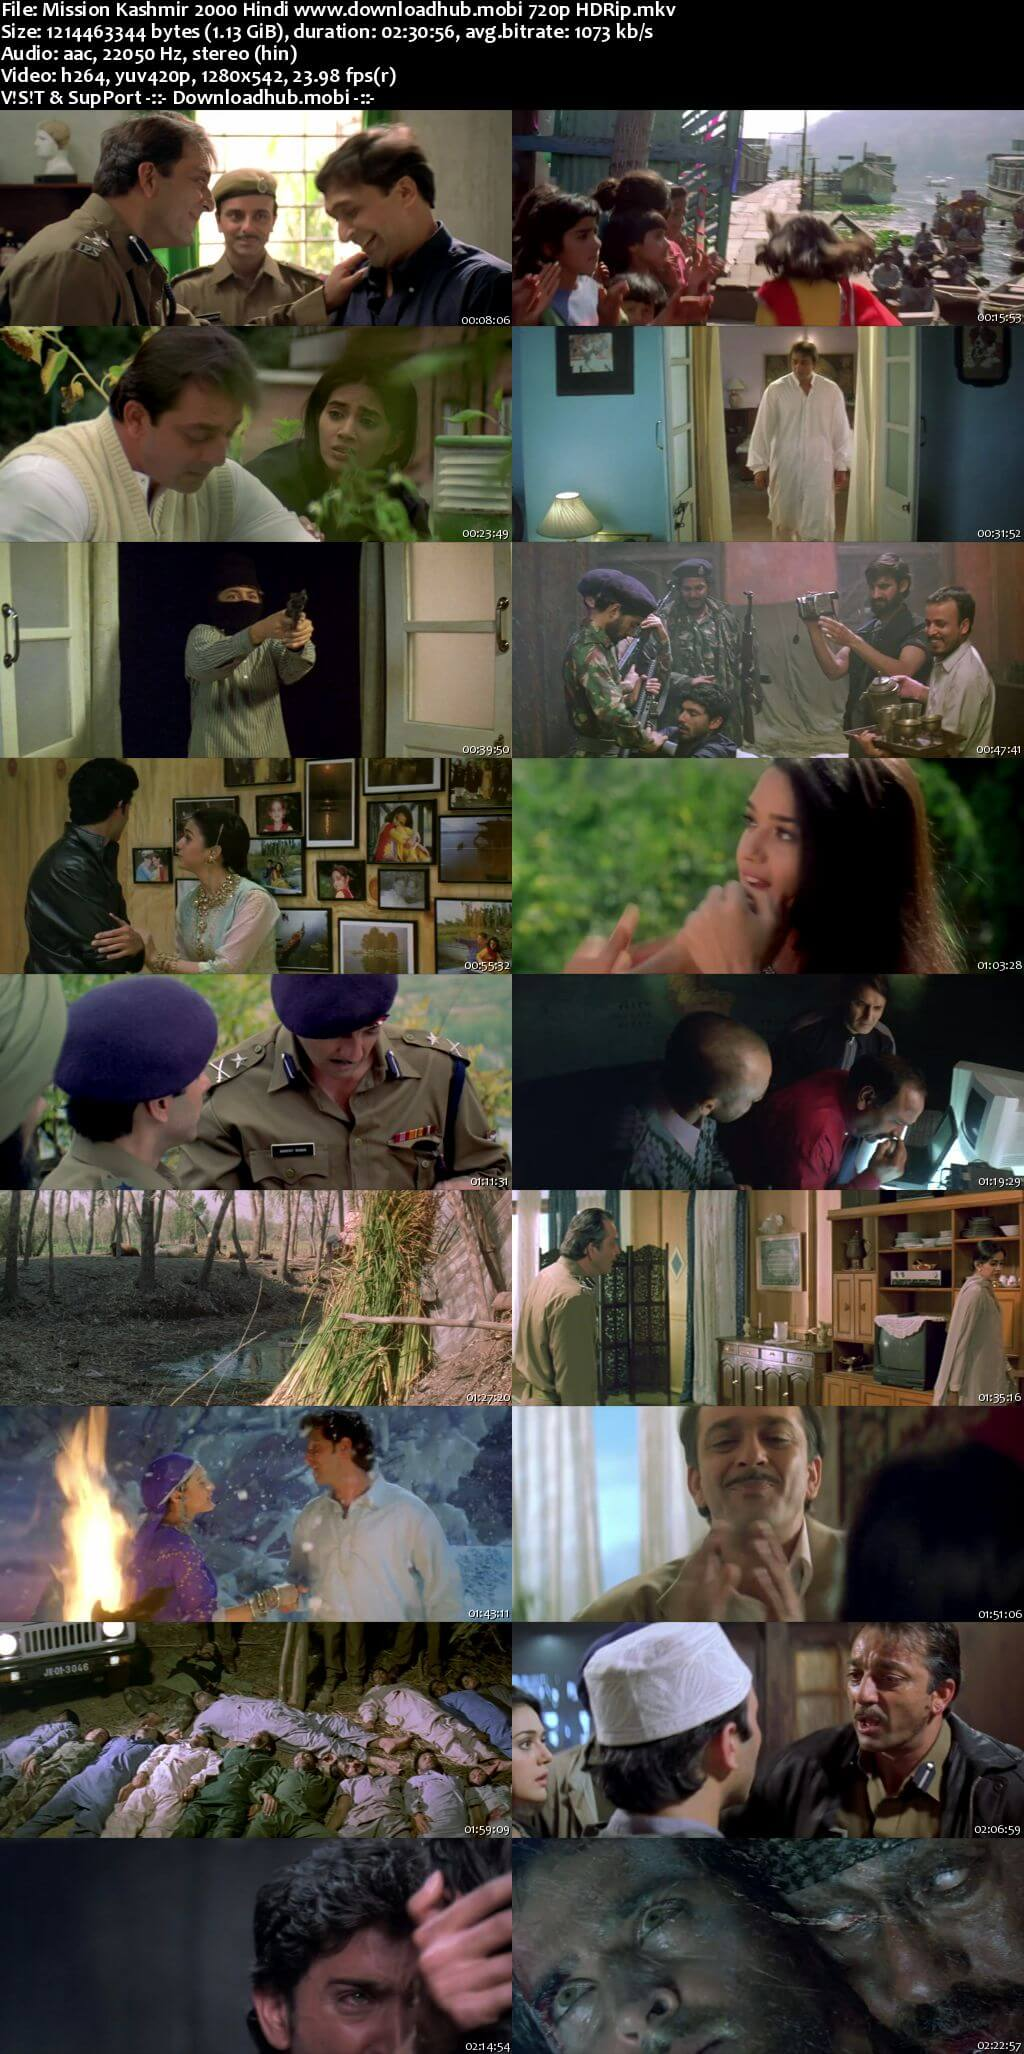 Mission Kashmir 2000 Hindi 720p HDRip x264